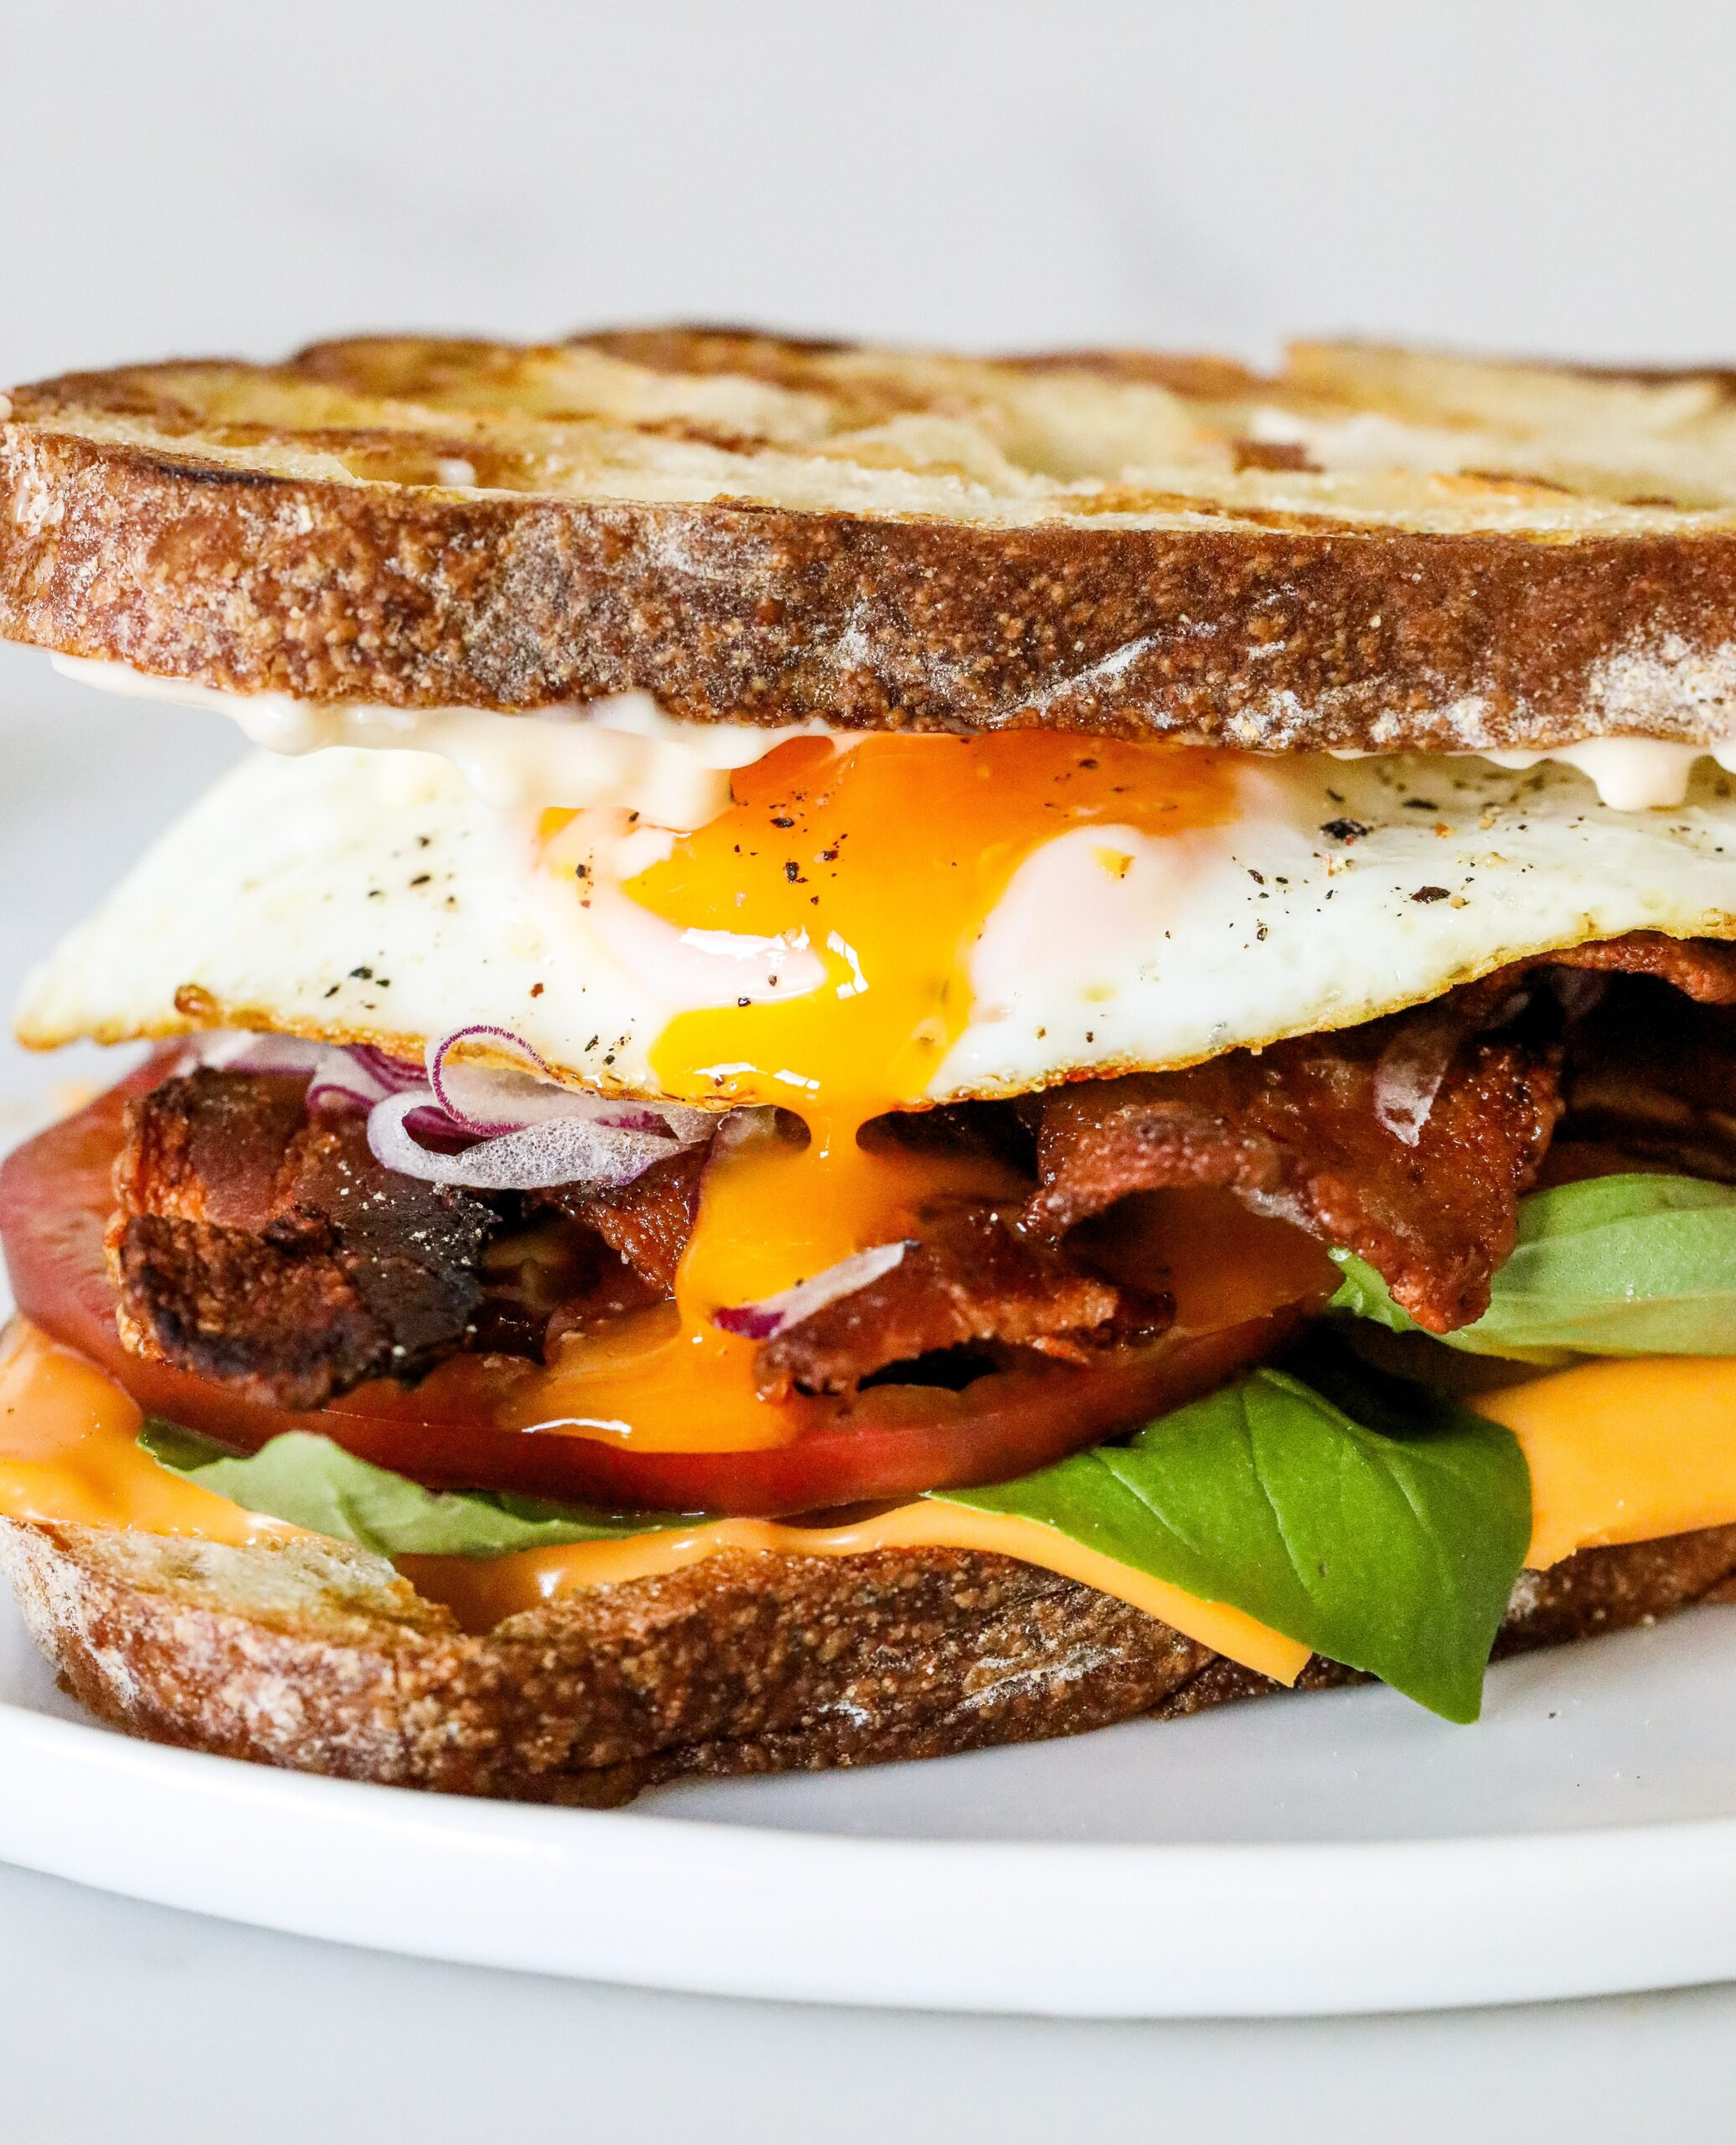 Fried Egg Breakfast Sandwich